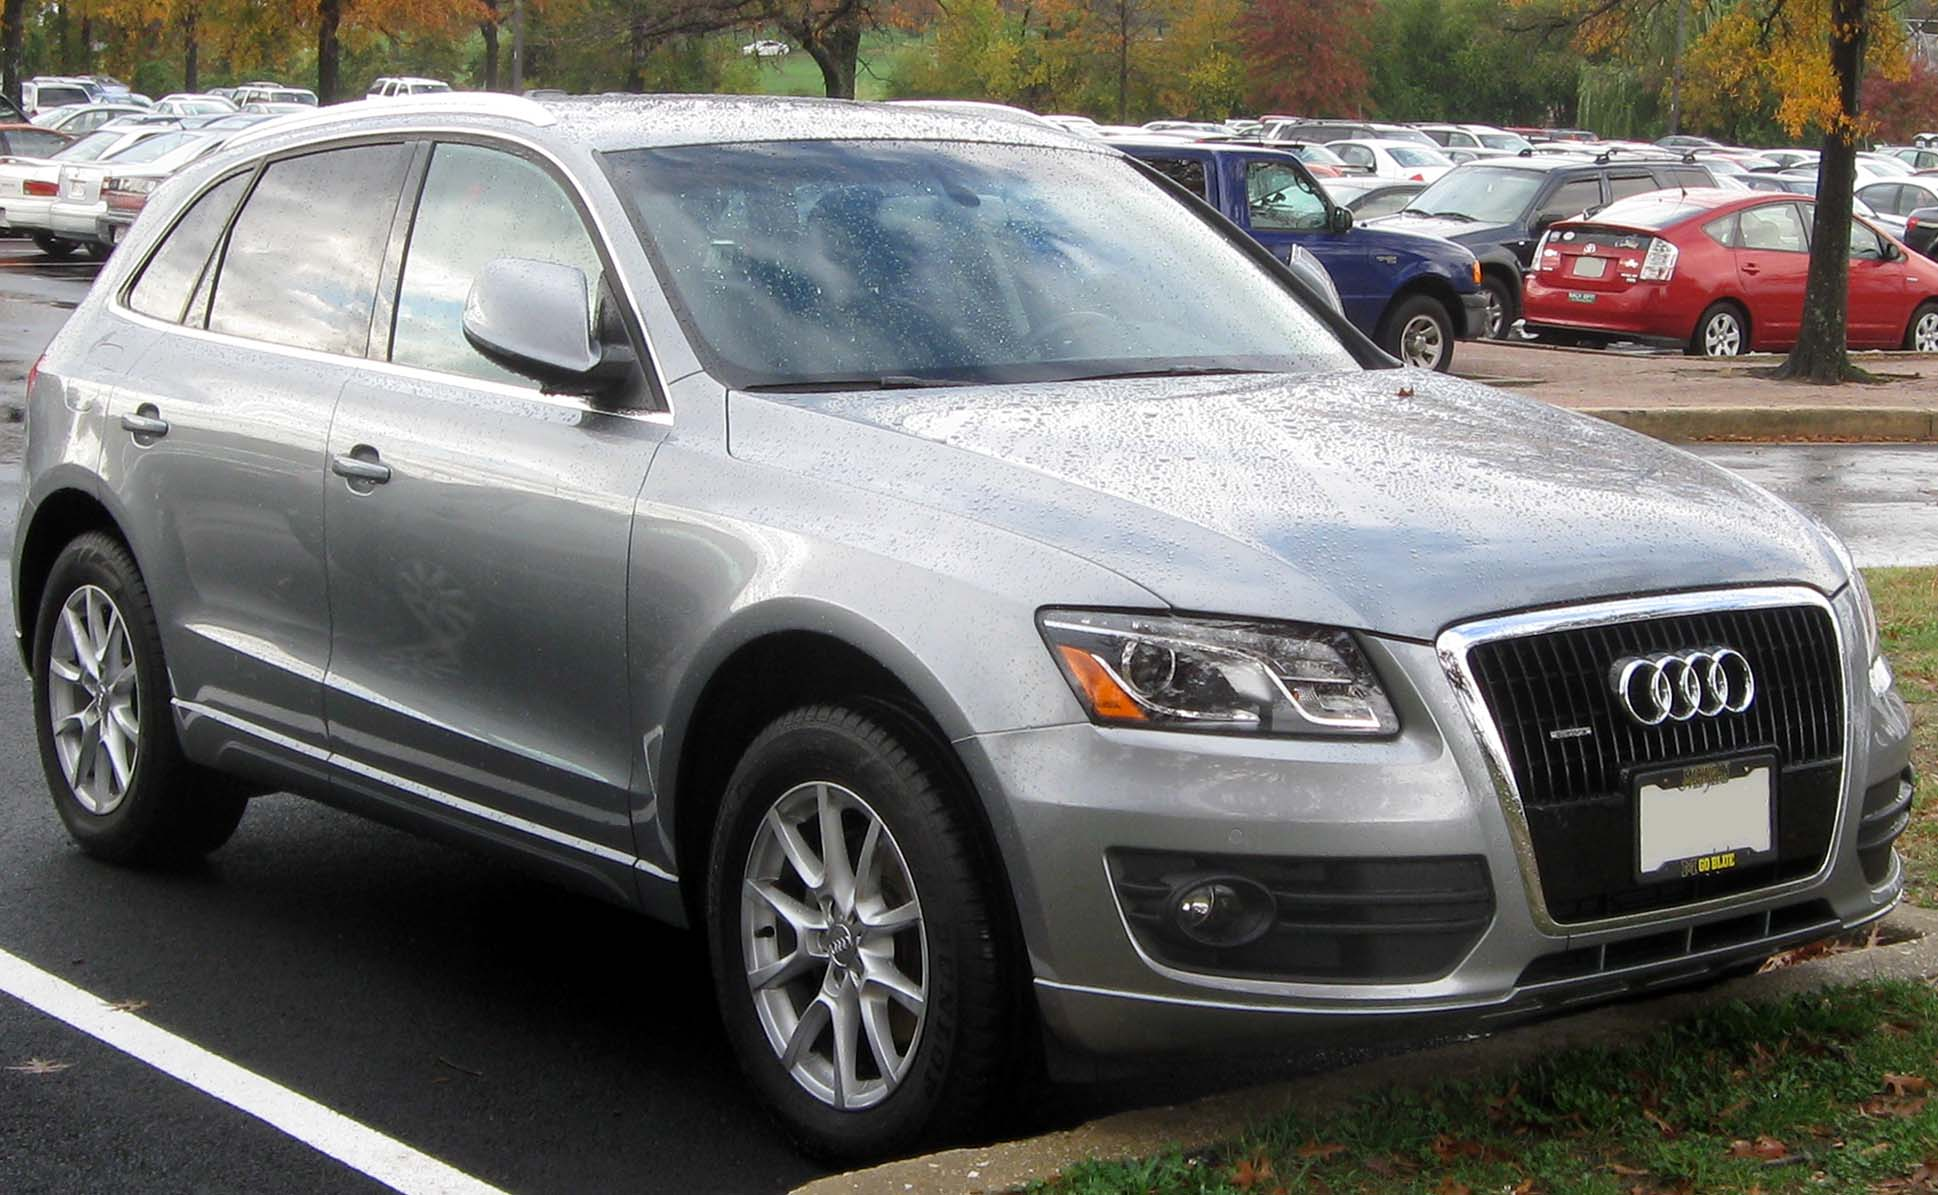 File Audi Q5 10 27 2010 Jpg Wikimedia Commons